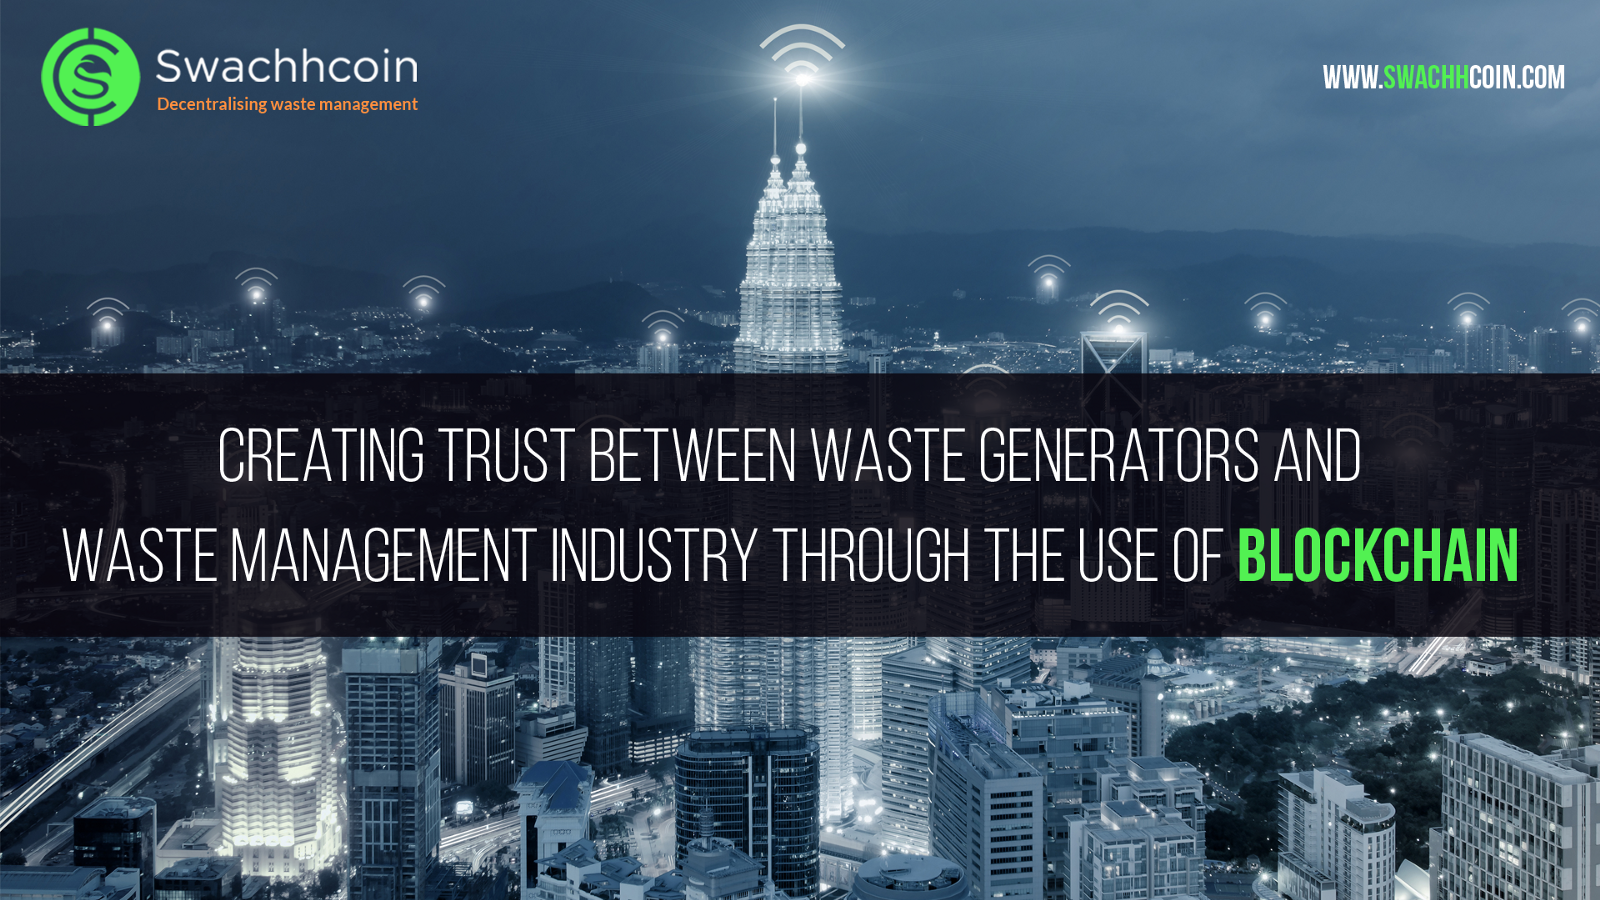 /different-utilities-of-the-swachhcoin-platform-in-the-near-future-58b89f1b093 feature image